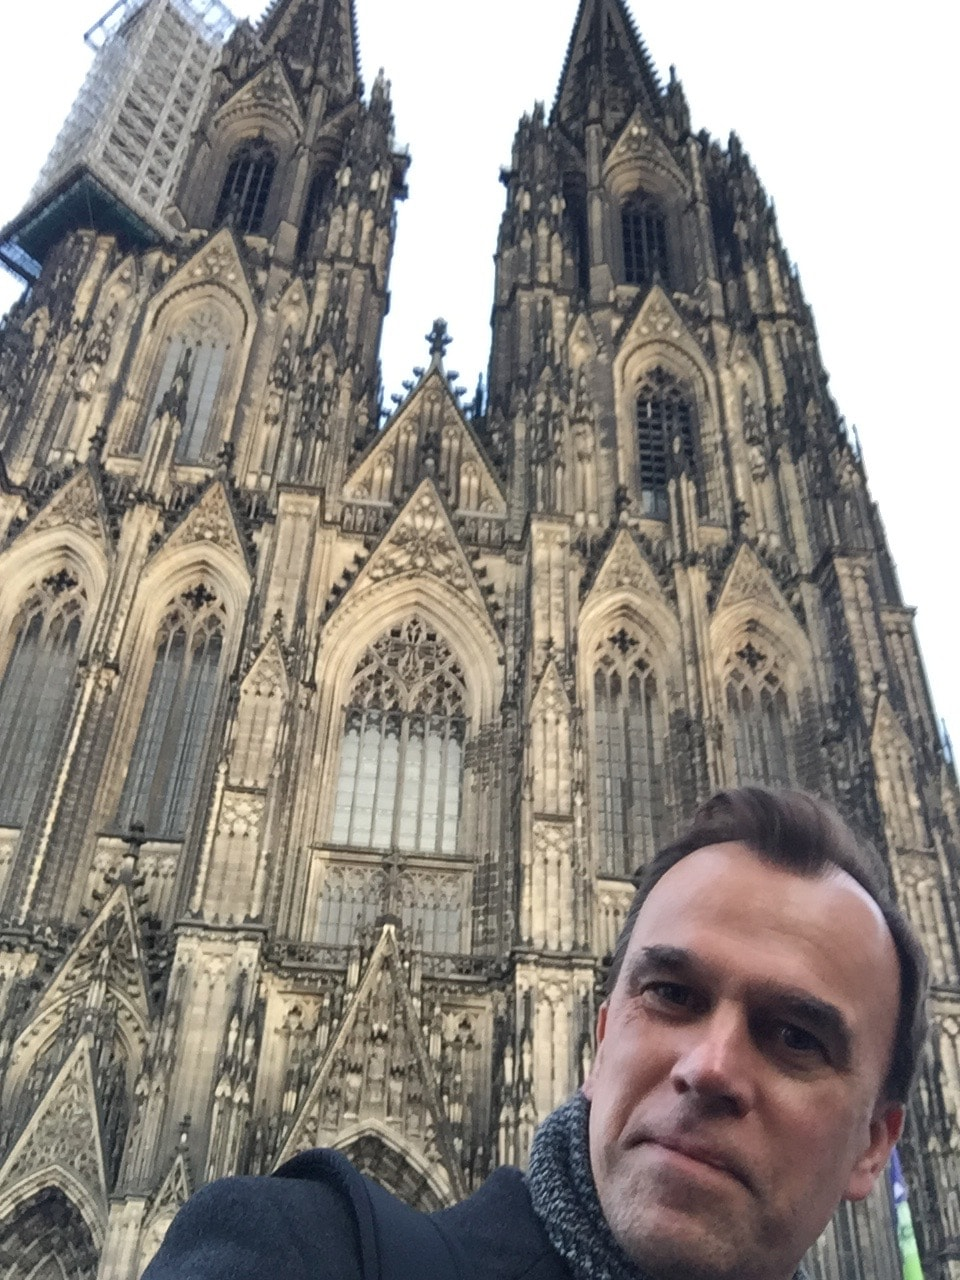 Picture shows a selfie taken by Martin, in the background is a large cathedral in Cologne. Martin is in the foreground smiling, wearing a coat and scarf.